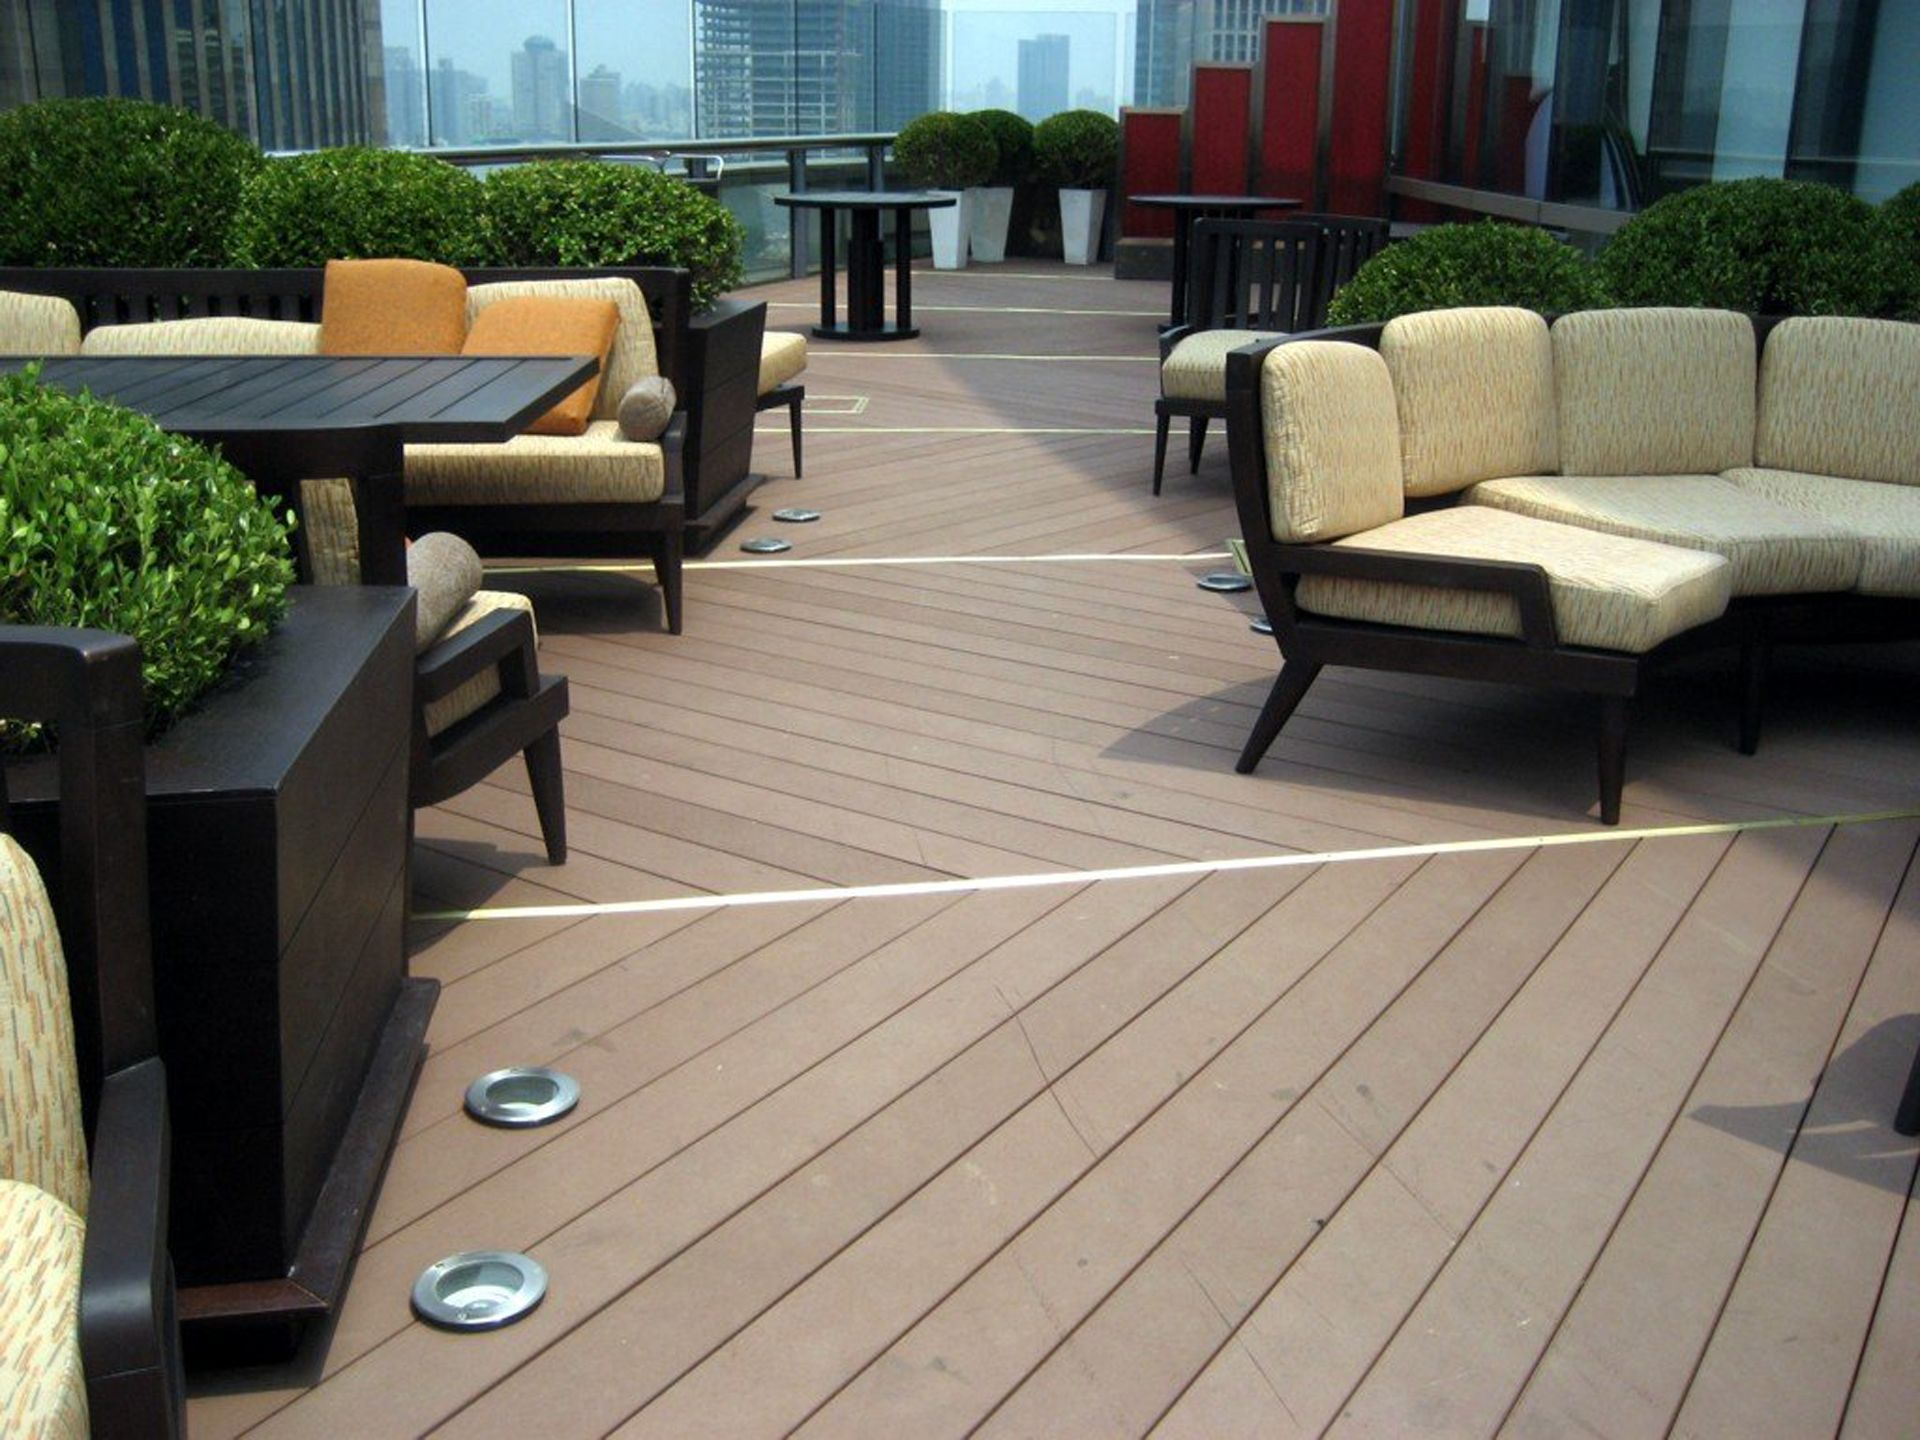 12 2x6 composite decking prices wpc decking composite deck 12 2x6 composite decking prices baanklon Images